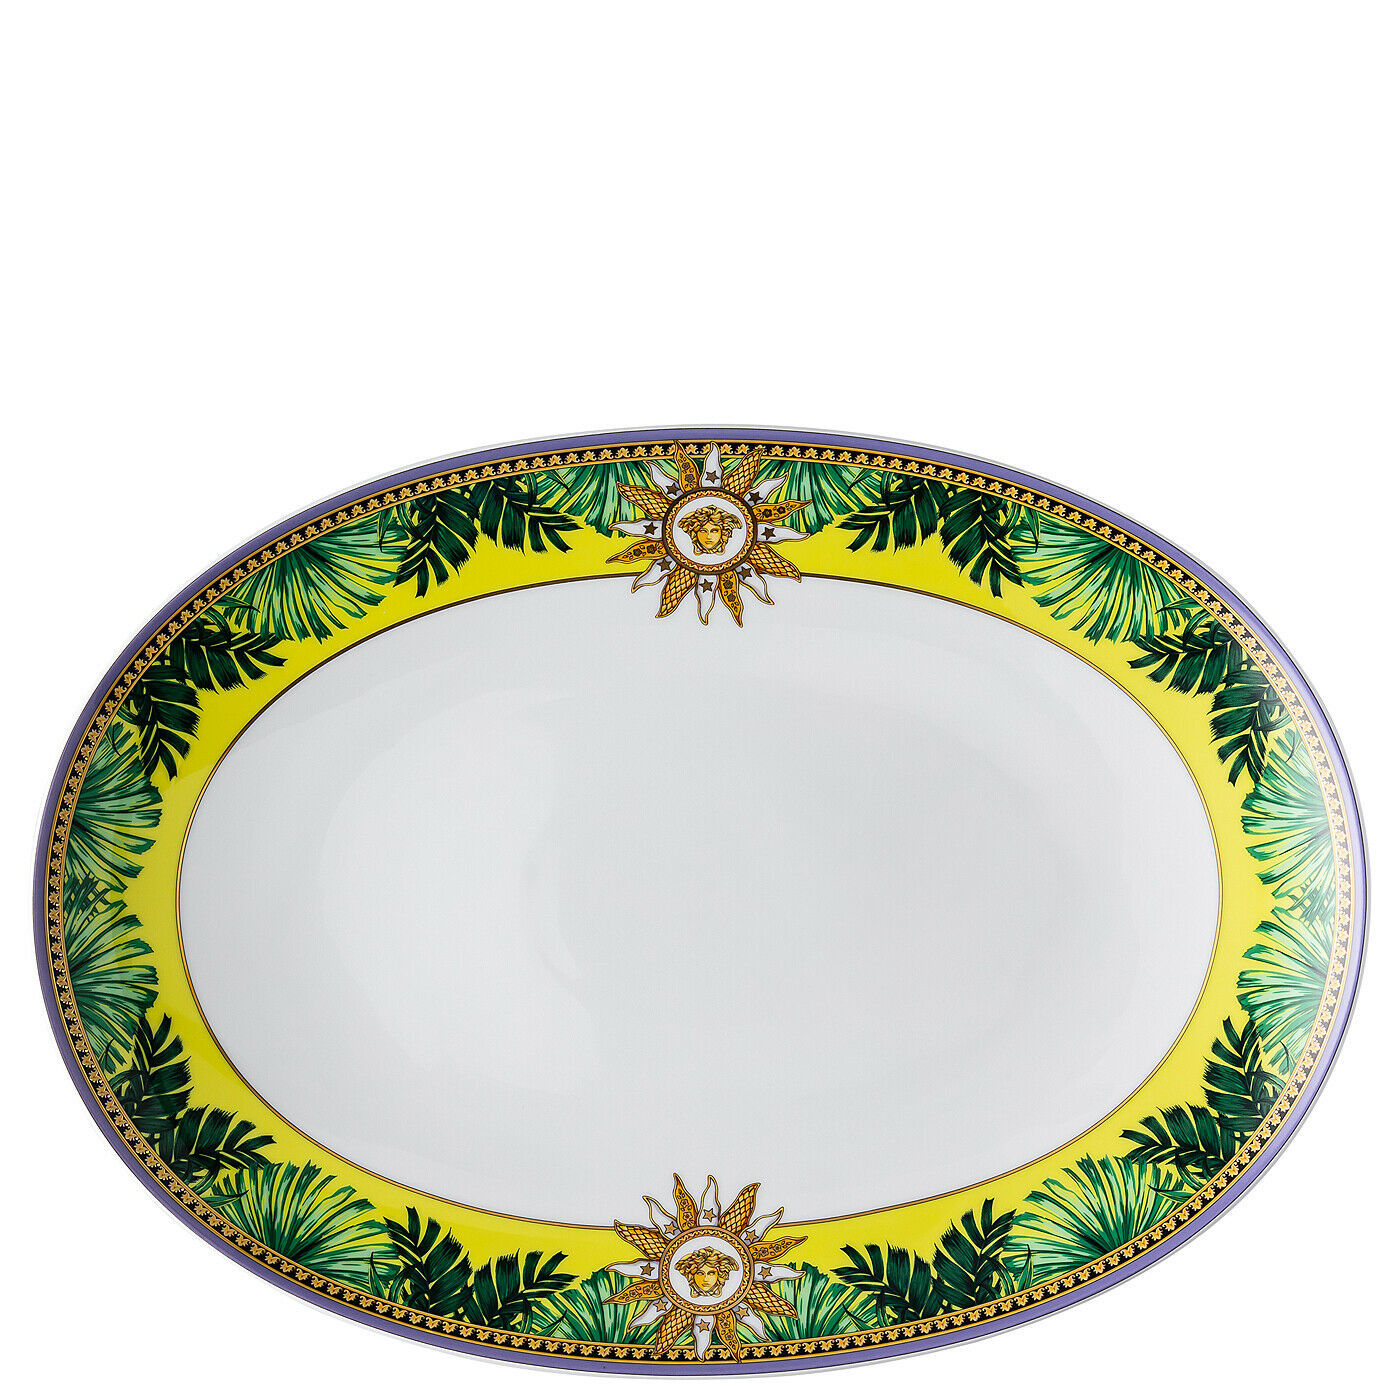 Primary image for Versace by Rosenthal Jungle Animalier Platter 33 cm/12.99""